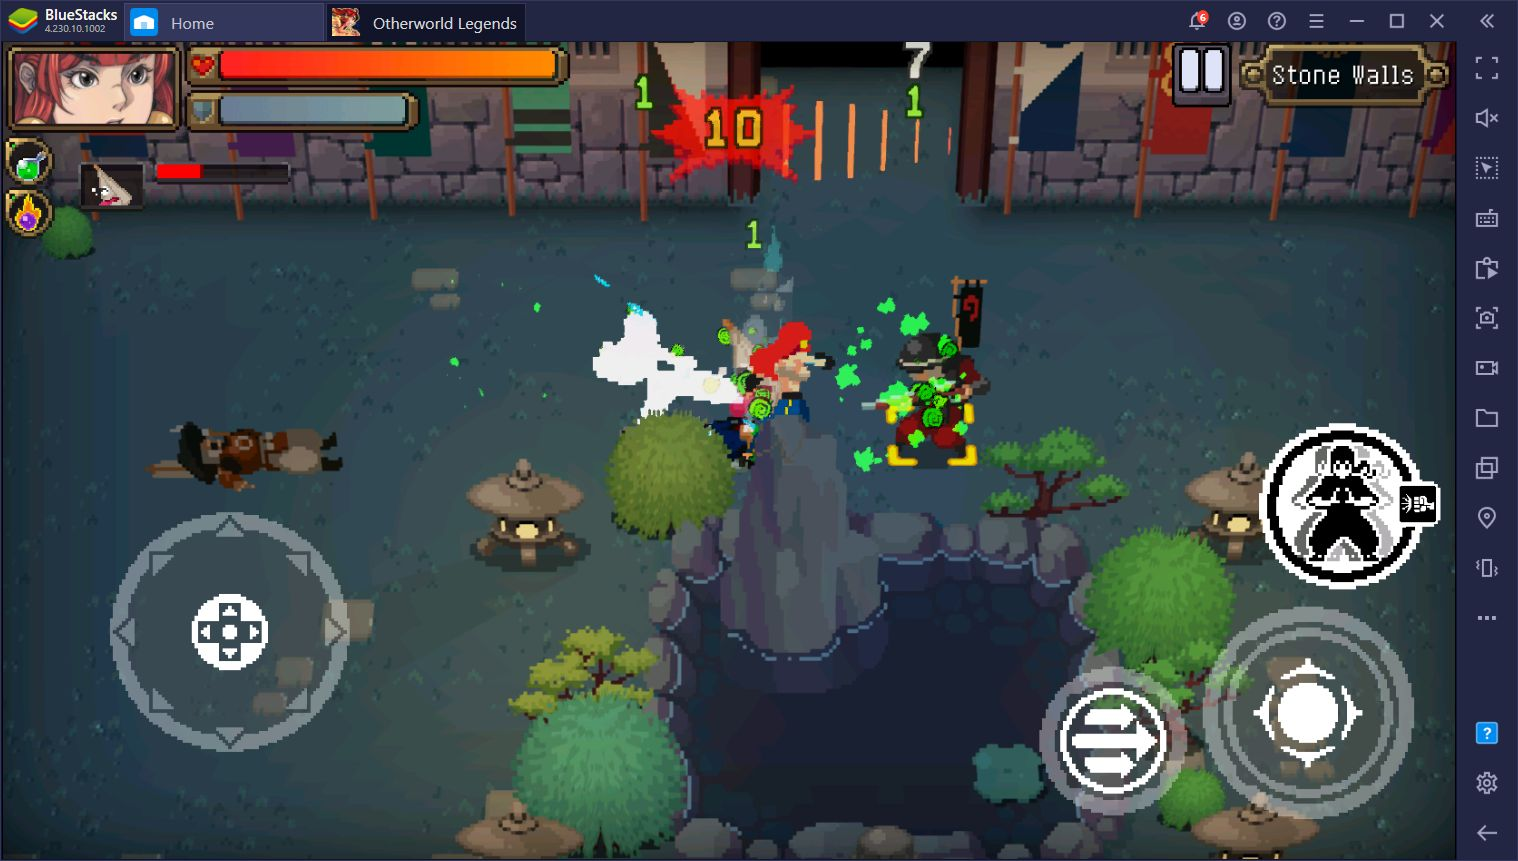 Otherworld Legends – How to Play This Adrenaline-Inducing Action Roguelike Game on PC